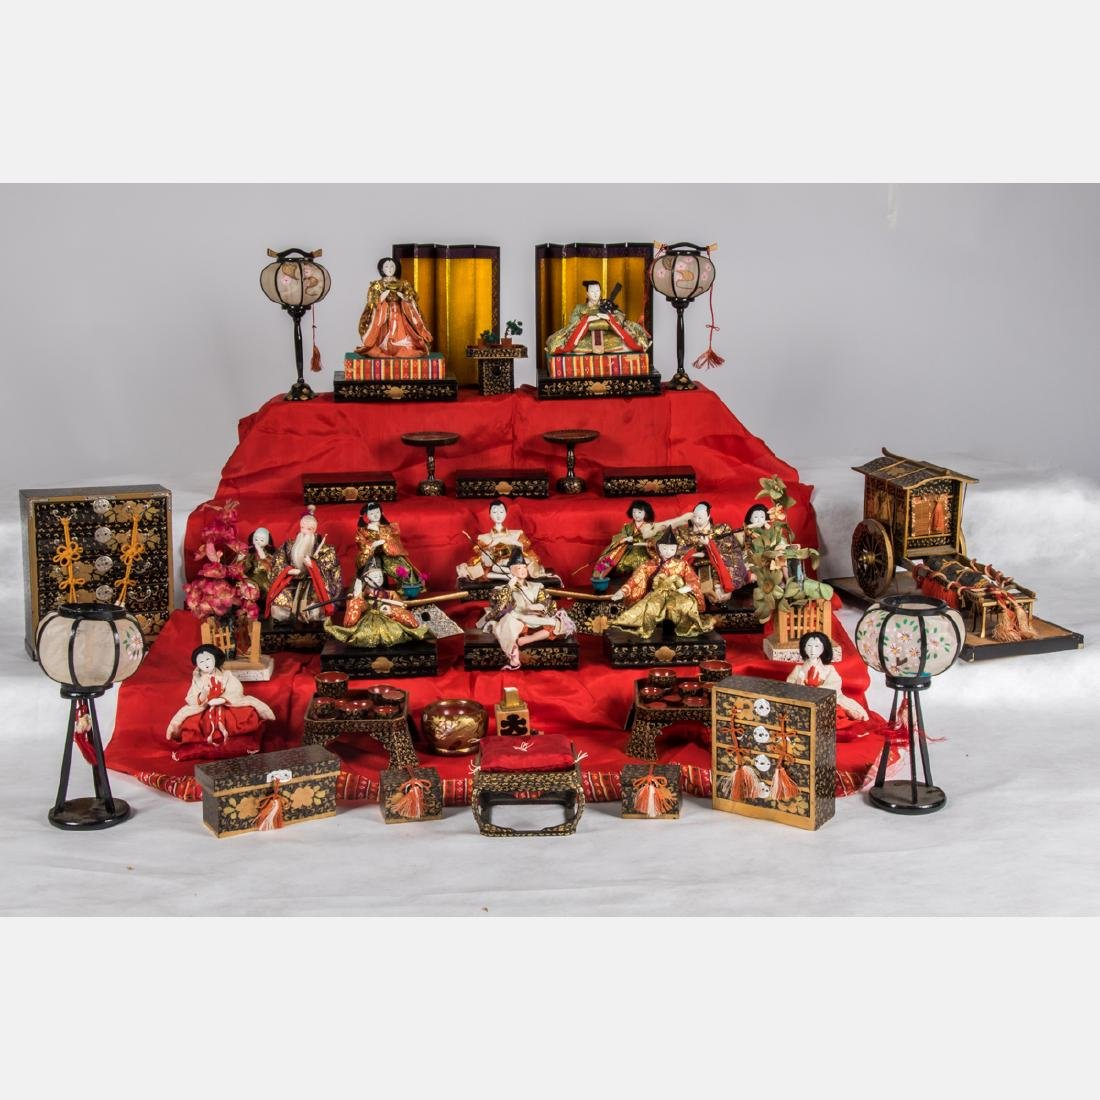 A Group of Japanese Composite Hina Dolls with Vignettes